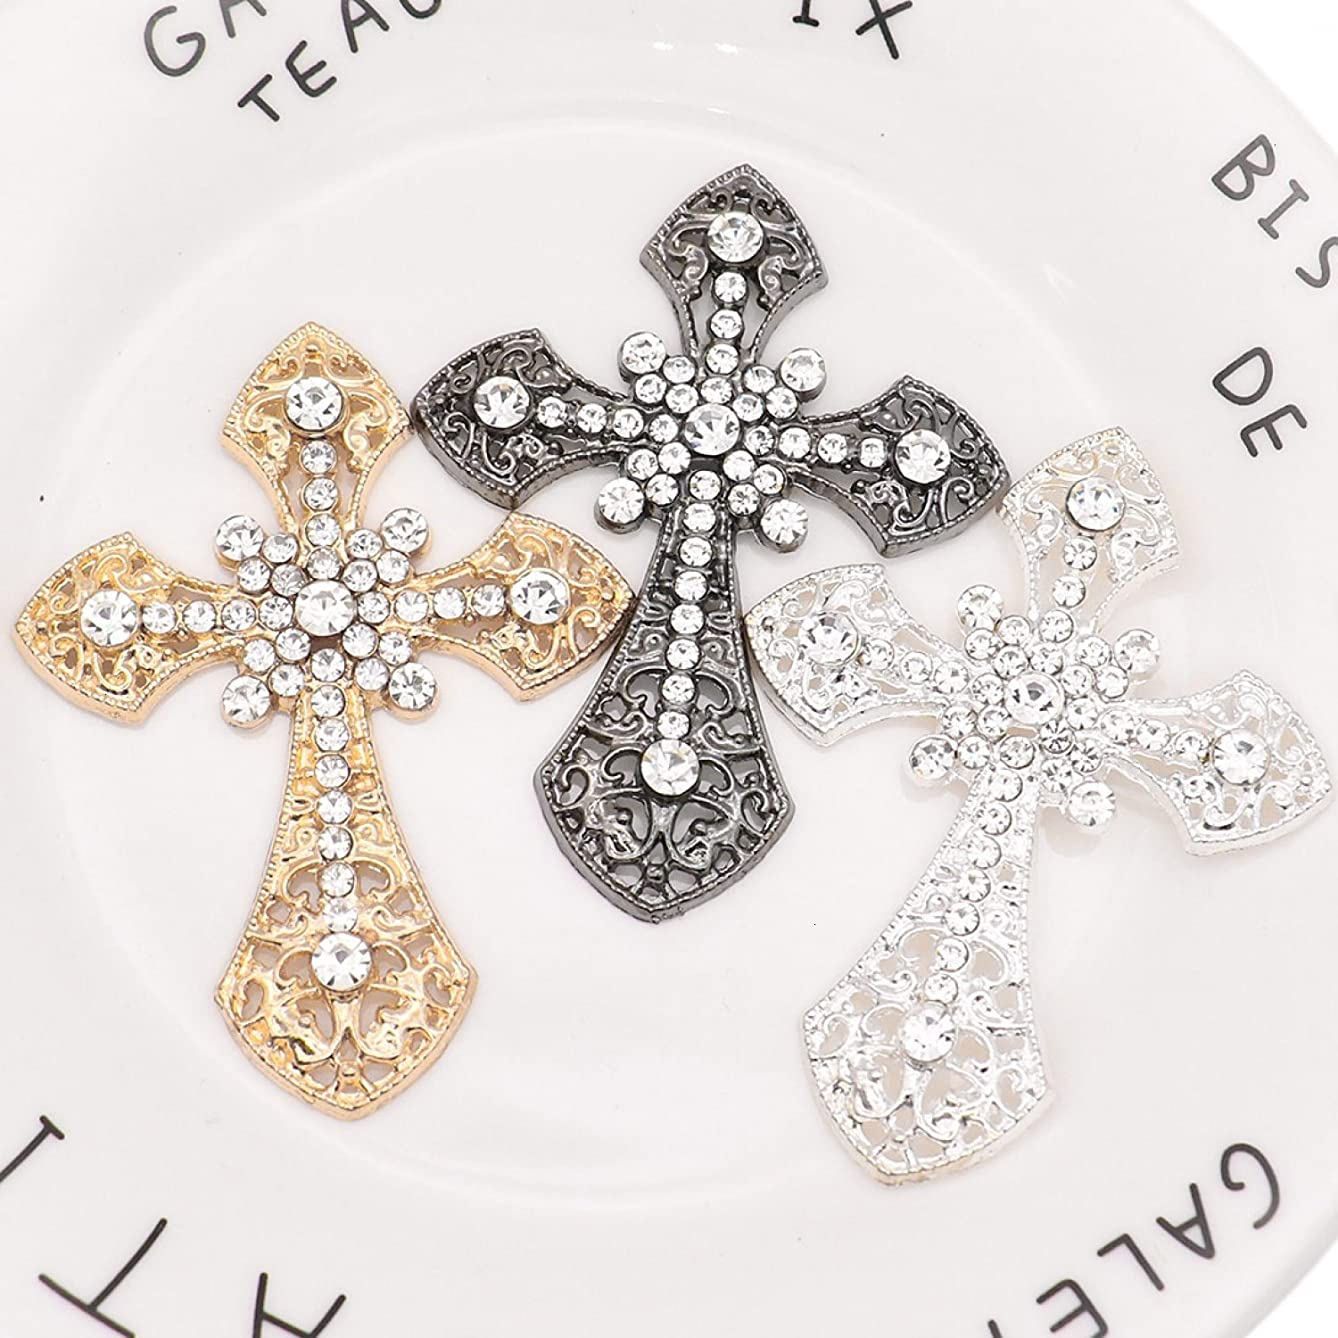 HUELE 6 pcs Rhinestone Cross Applique Patches Sew-On Embroidery Iron On Patches